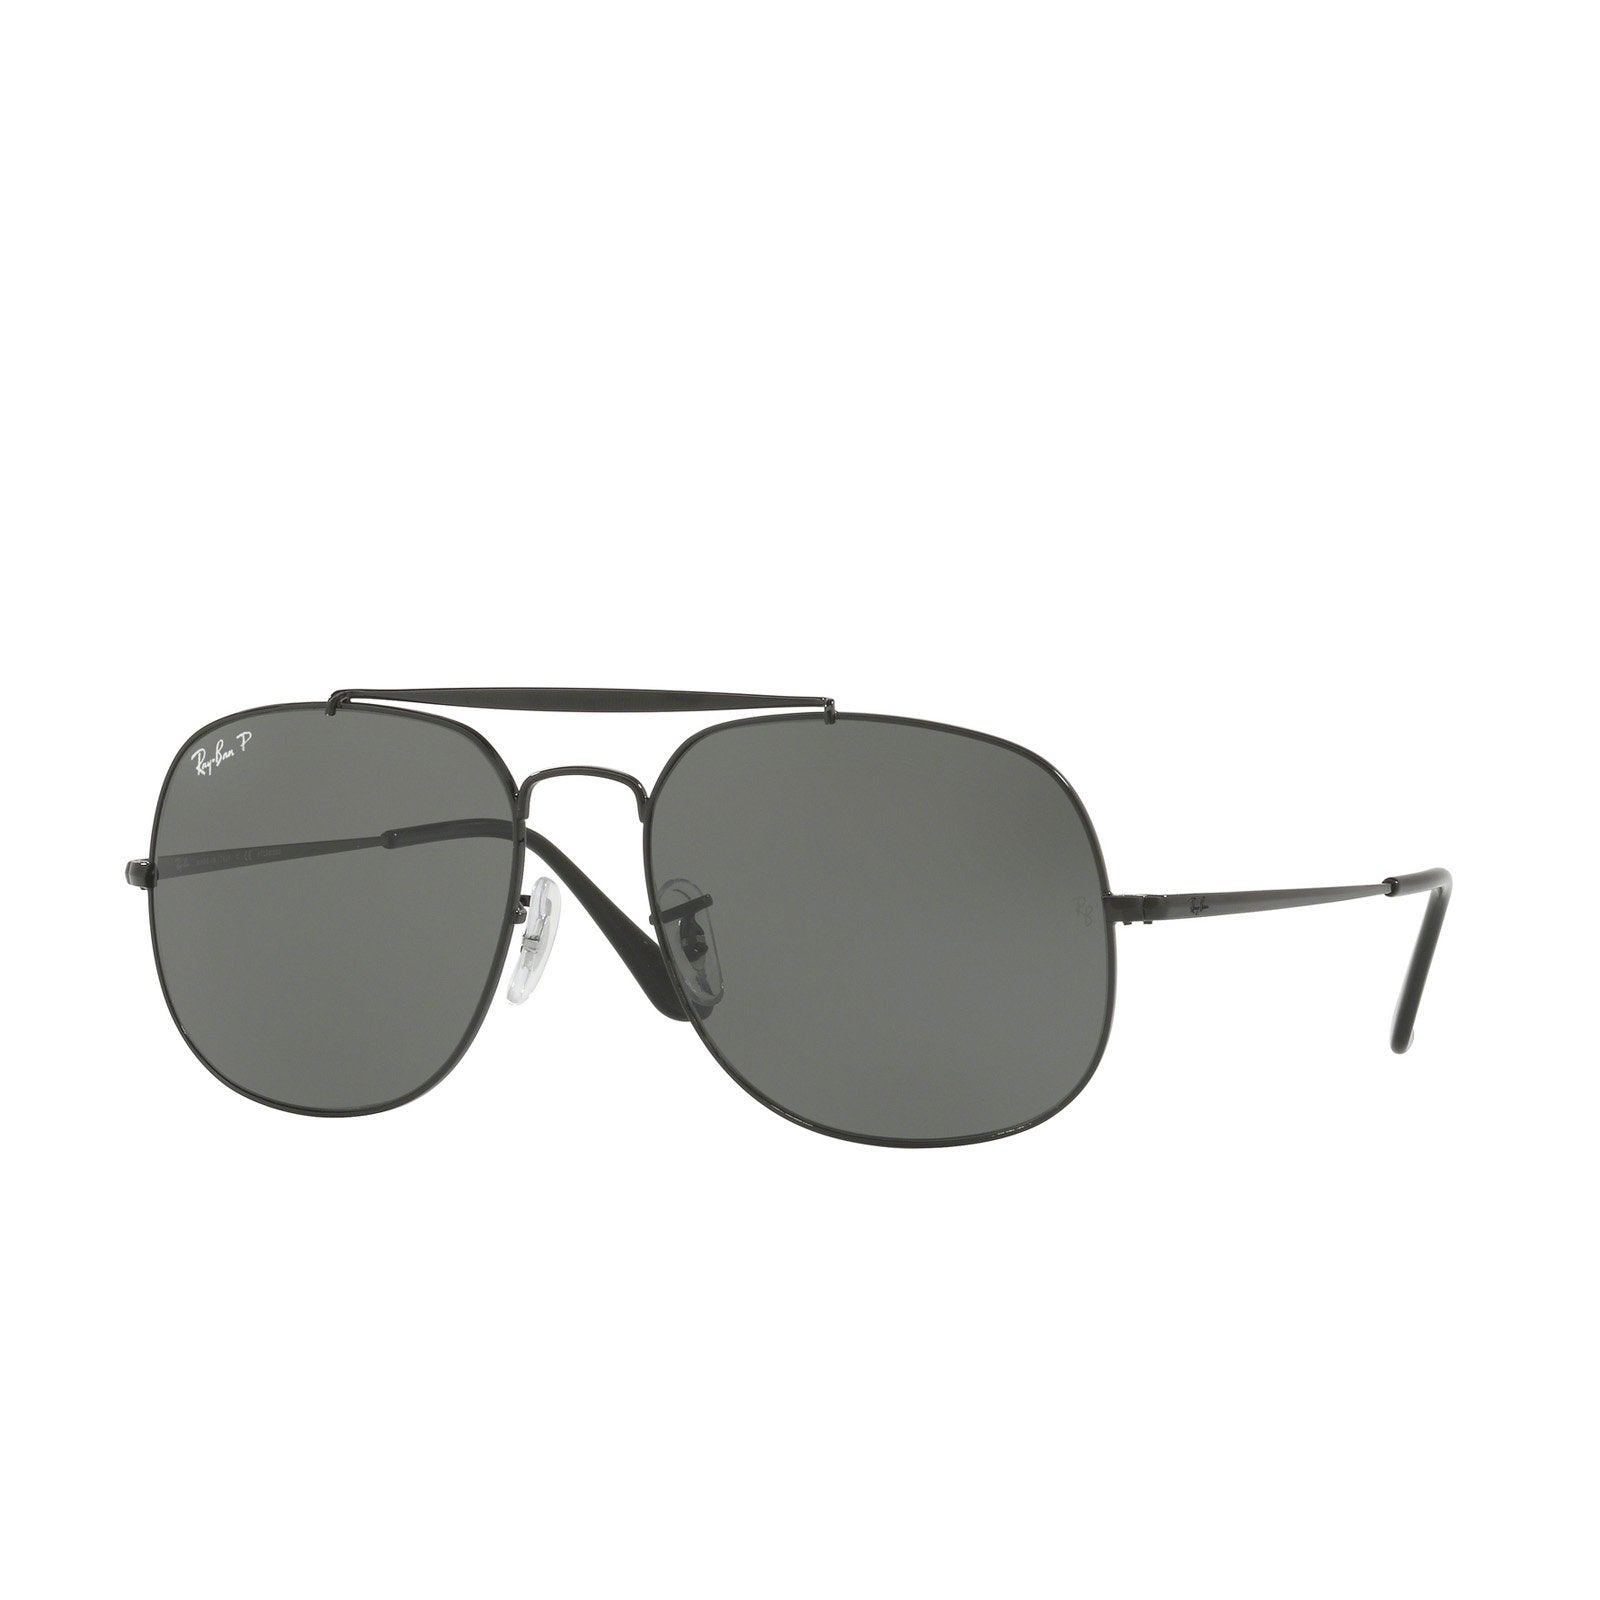 Ray-Ban RB3561 002/58 Sunglasses